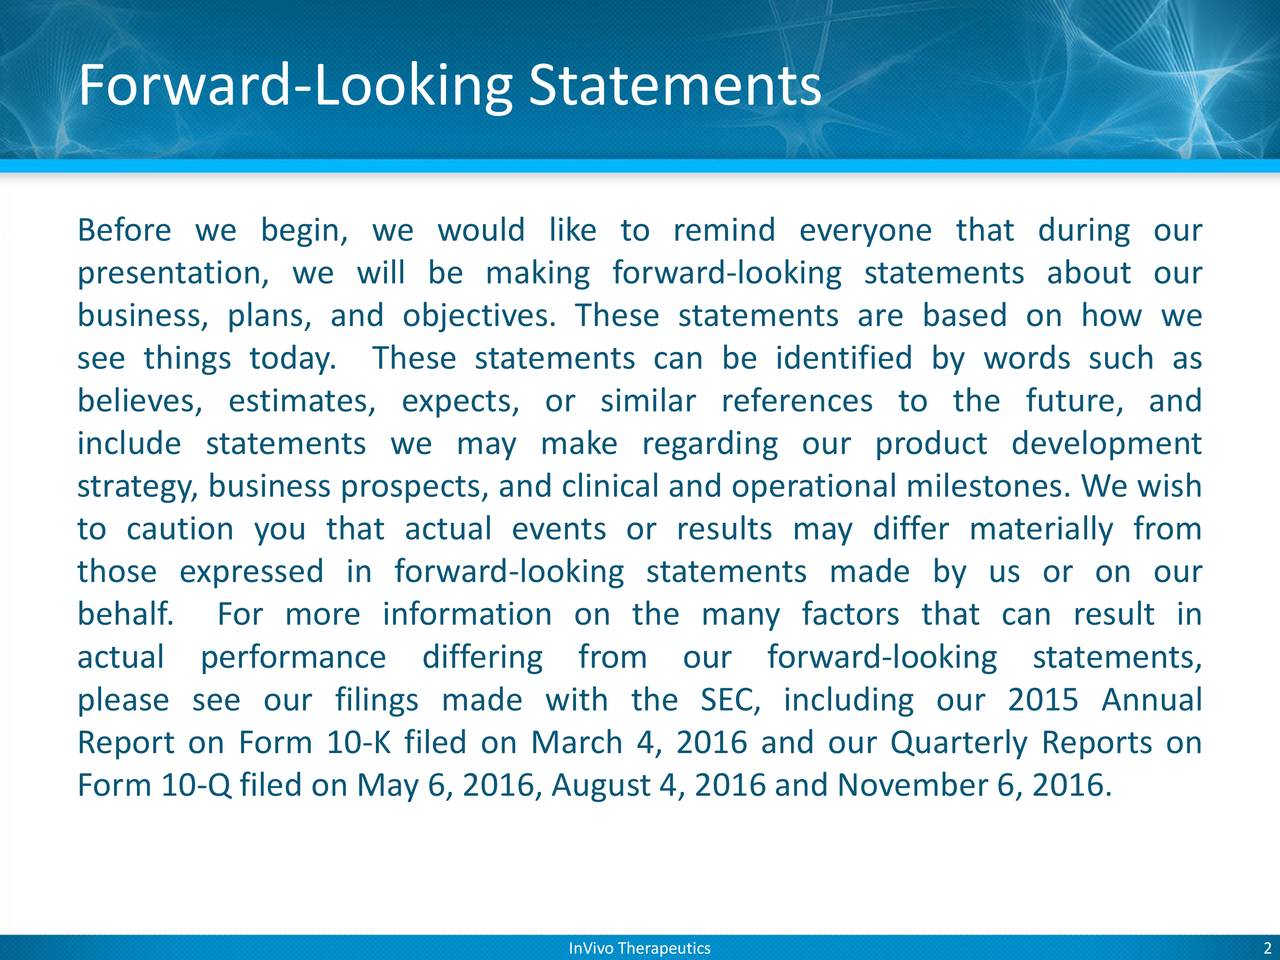 Before we begin, we would like to remind everyone that during our presentation, we will be making forward-looking statements about our business, plans, and objectives. These statements are based on how we see things today. These statements can be identified by words such as believes, estimates, expects, or similar references to the future, and include statements we may make regarding our product development strategy, business prospects, and clinical and operational milestones. We wish to caution you that actual events or results may differ materially from those expressed in forward-looking statements made by us or on our behalf. For more information on the many factors that can result in actual performance differing from our forward-looking statements, please see our filings made with the SEC, including our 2015 Annual Report on Form 10-K filed on March 4, 2016 and our Quarterly Reports on Form 10-Q filed on May 6, 2016, August 4, 2016 and November 6, 2016.